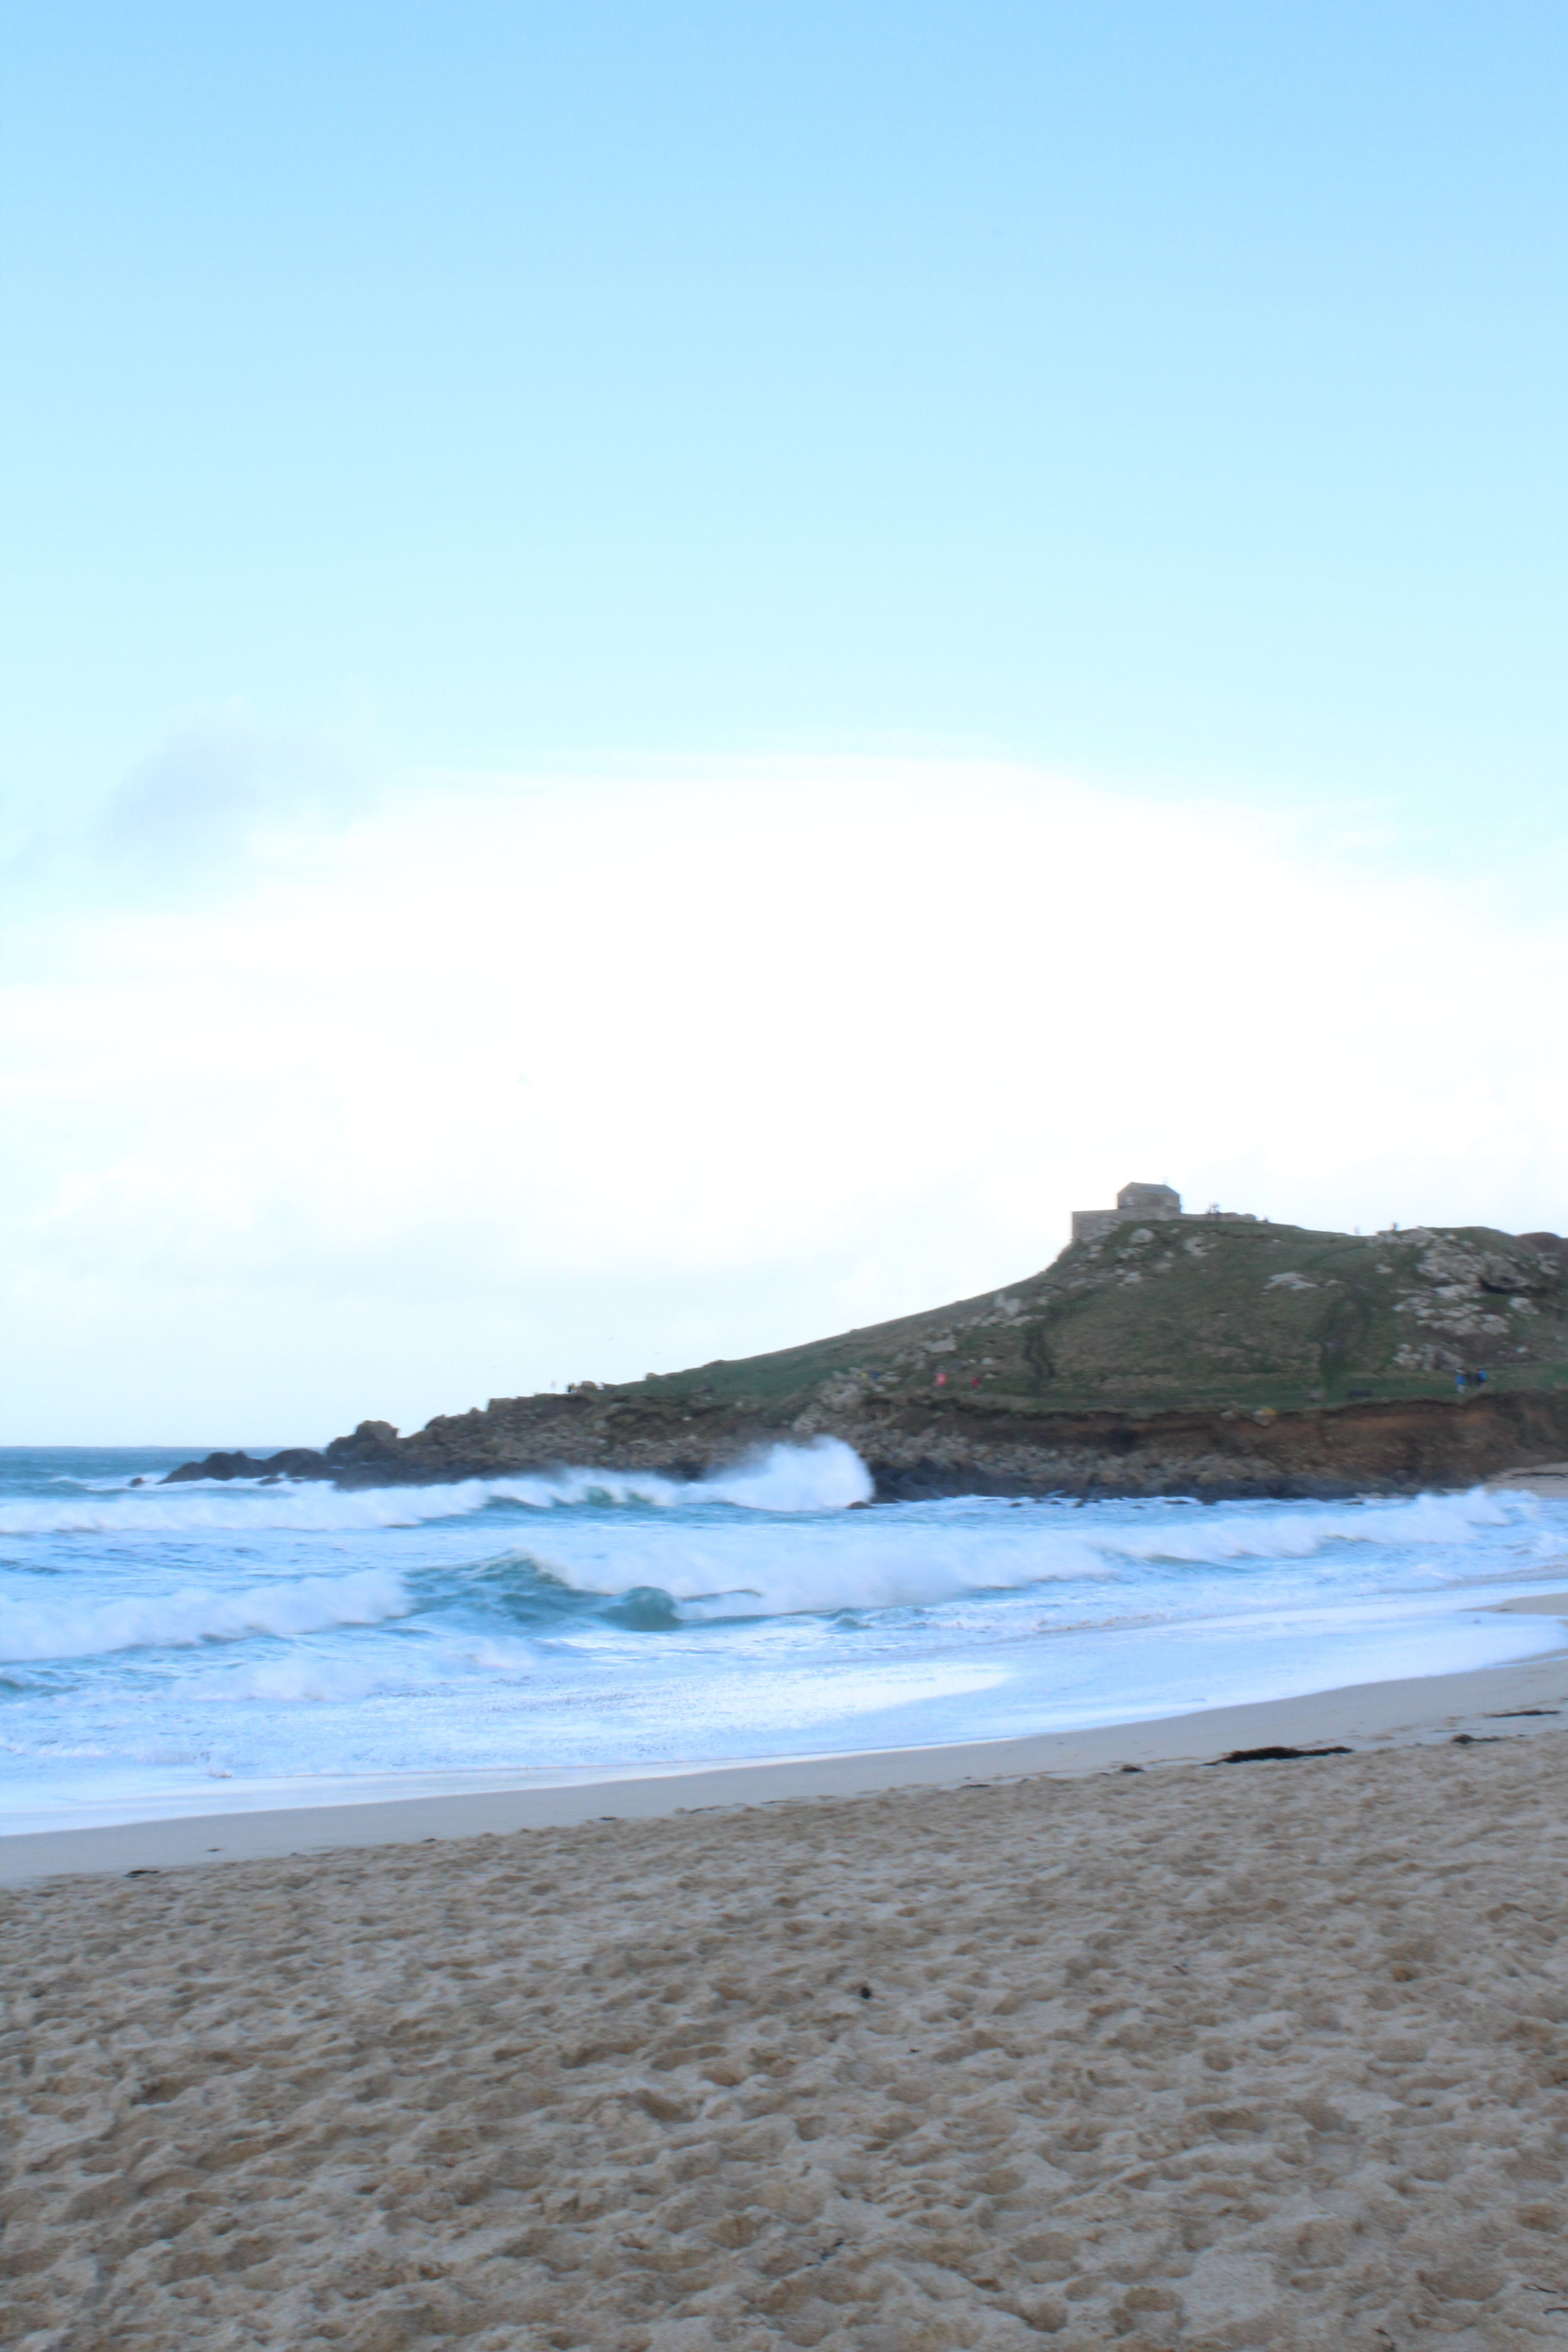 The crashing waves of Porthmeor and the Island of St Ives. This is the main beach for surfing in St Ives and there were quite a few out on this fresh New Year's Eve. This is the beach that The Tate overlooks and also has it's own fabulous café that sell tapas meals as well as mains. There are outdoor booths with heaters and blankets are provided. In the summer the West Beach bakery sells amazing freshly baked pizzas and is a little quieter than some of the main restaurants in the centre of town.